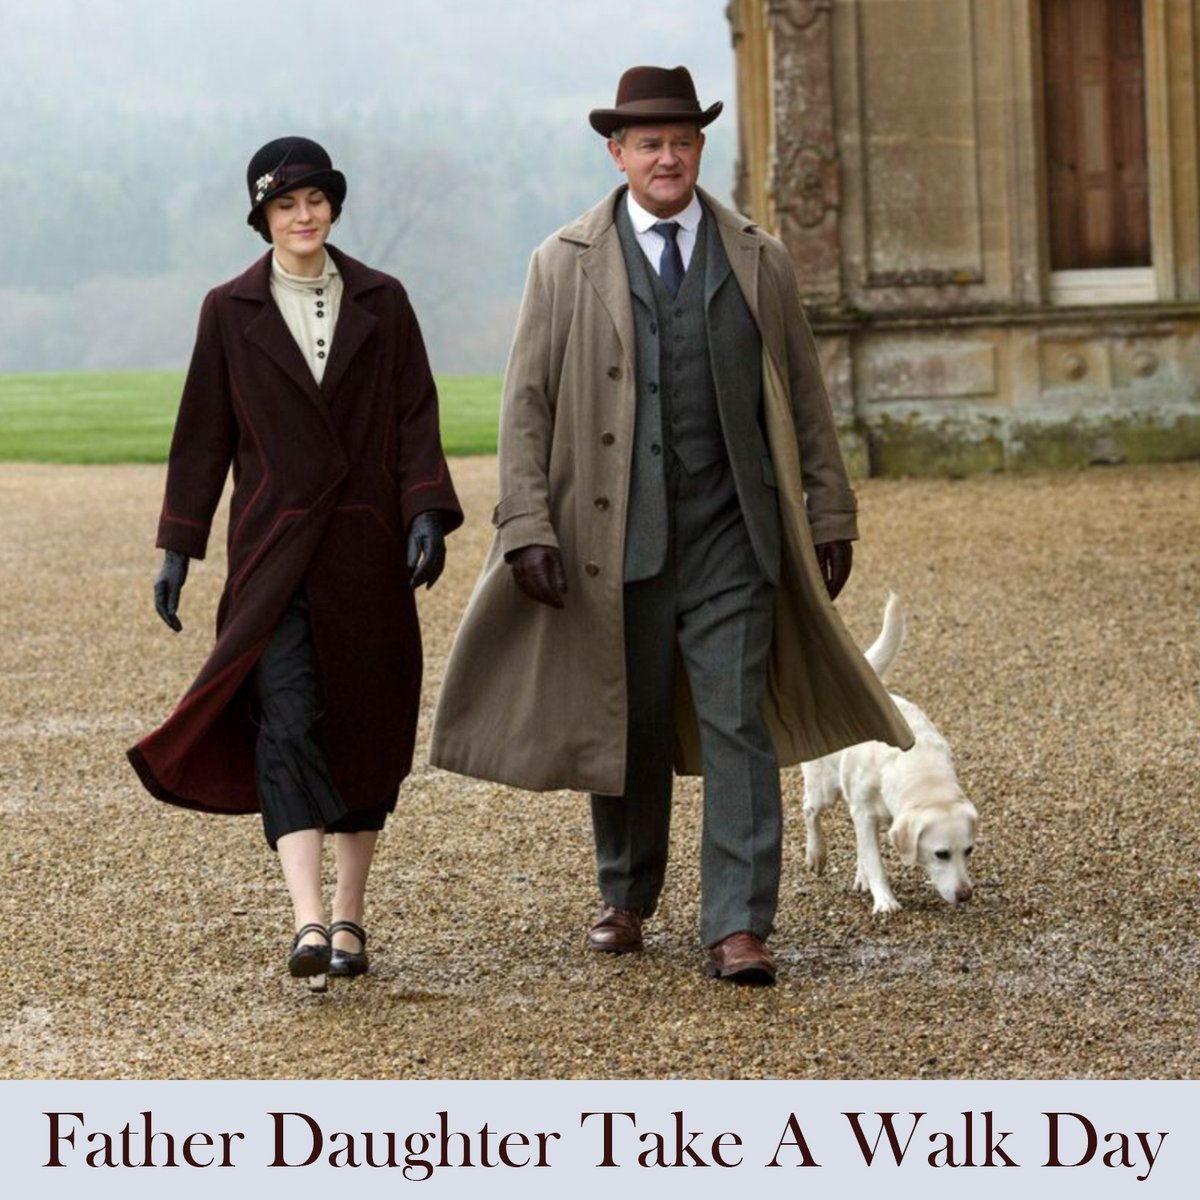 Whether it's around the estate or just around the corner, #FatherDaughterTakeAWalkDay (July 7) provides a nice excuse for a little extra family bonding and physical exercise. #DowntonAbbey <br>http://pic.twitter.com/EUAvkkmdfp